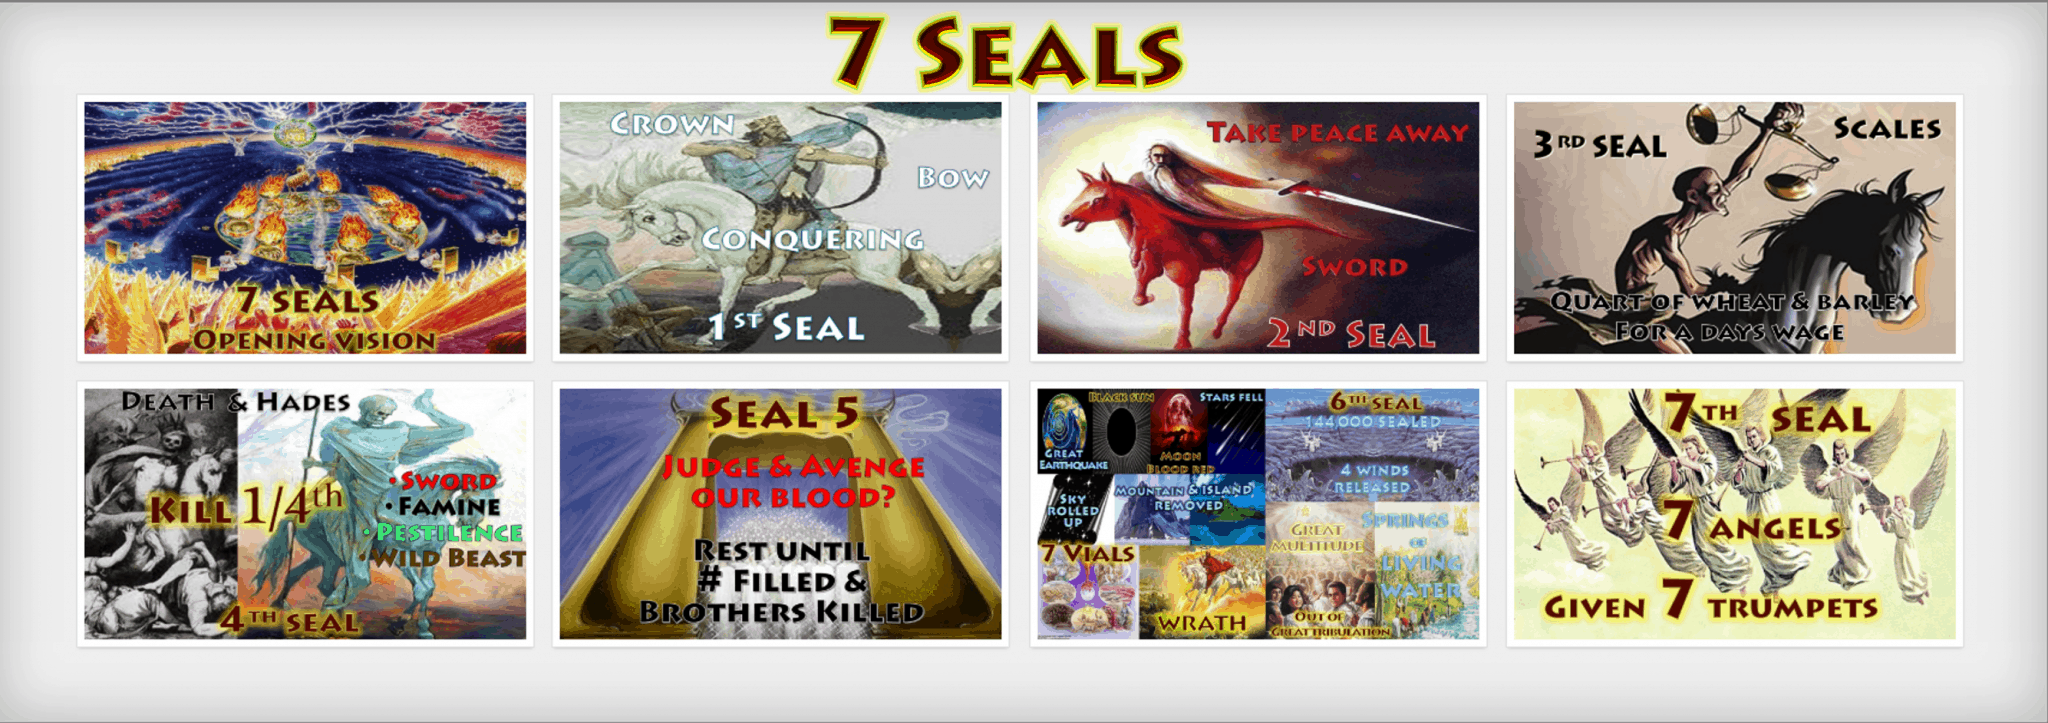 7 Seals,Book of Revelation,Seven Seals,First Seal,Second Seal,Third Seal,Fourth Seal,Fifth Seal,Sixth Seal,Seventh Seal,Revelation Chapter 4,Revelation Chapter 5,Revelation Chapter 6,Revelation Chapter 7,Picture Gallery,Album,Book of Revelation